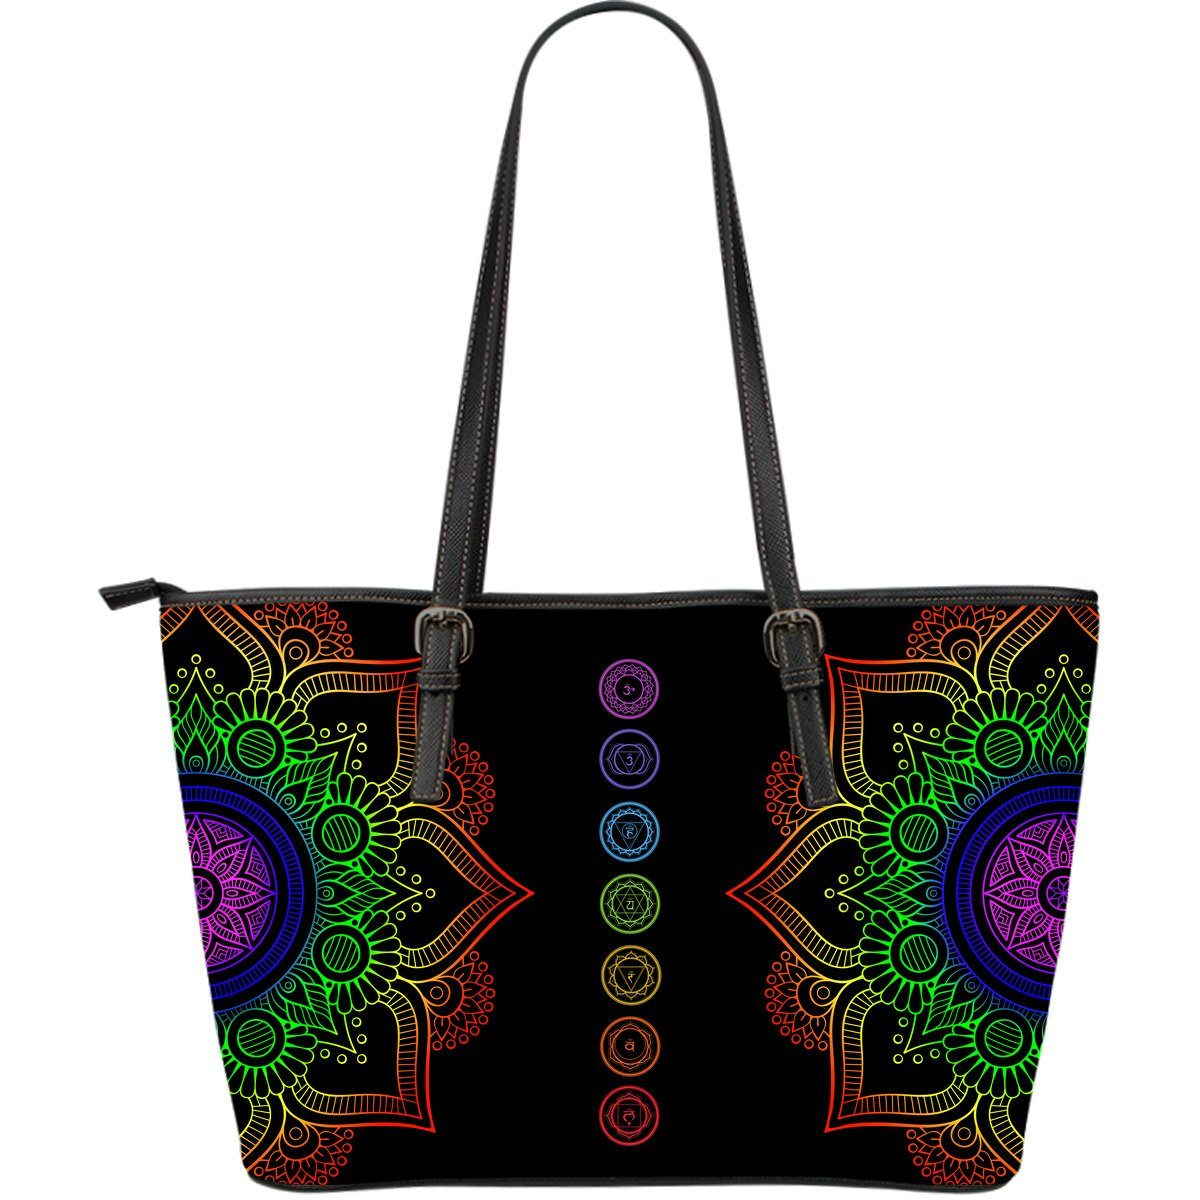 Leather Tote Bag - Chakra Mandala Leather Bag!